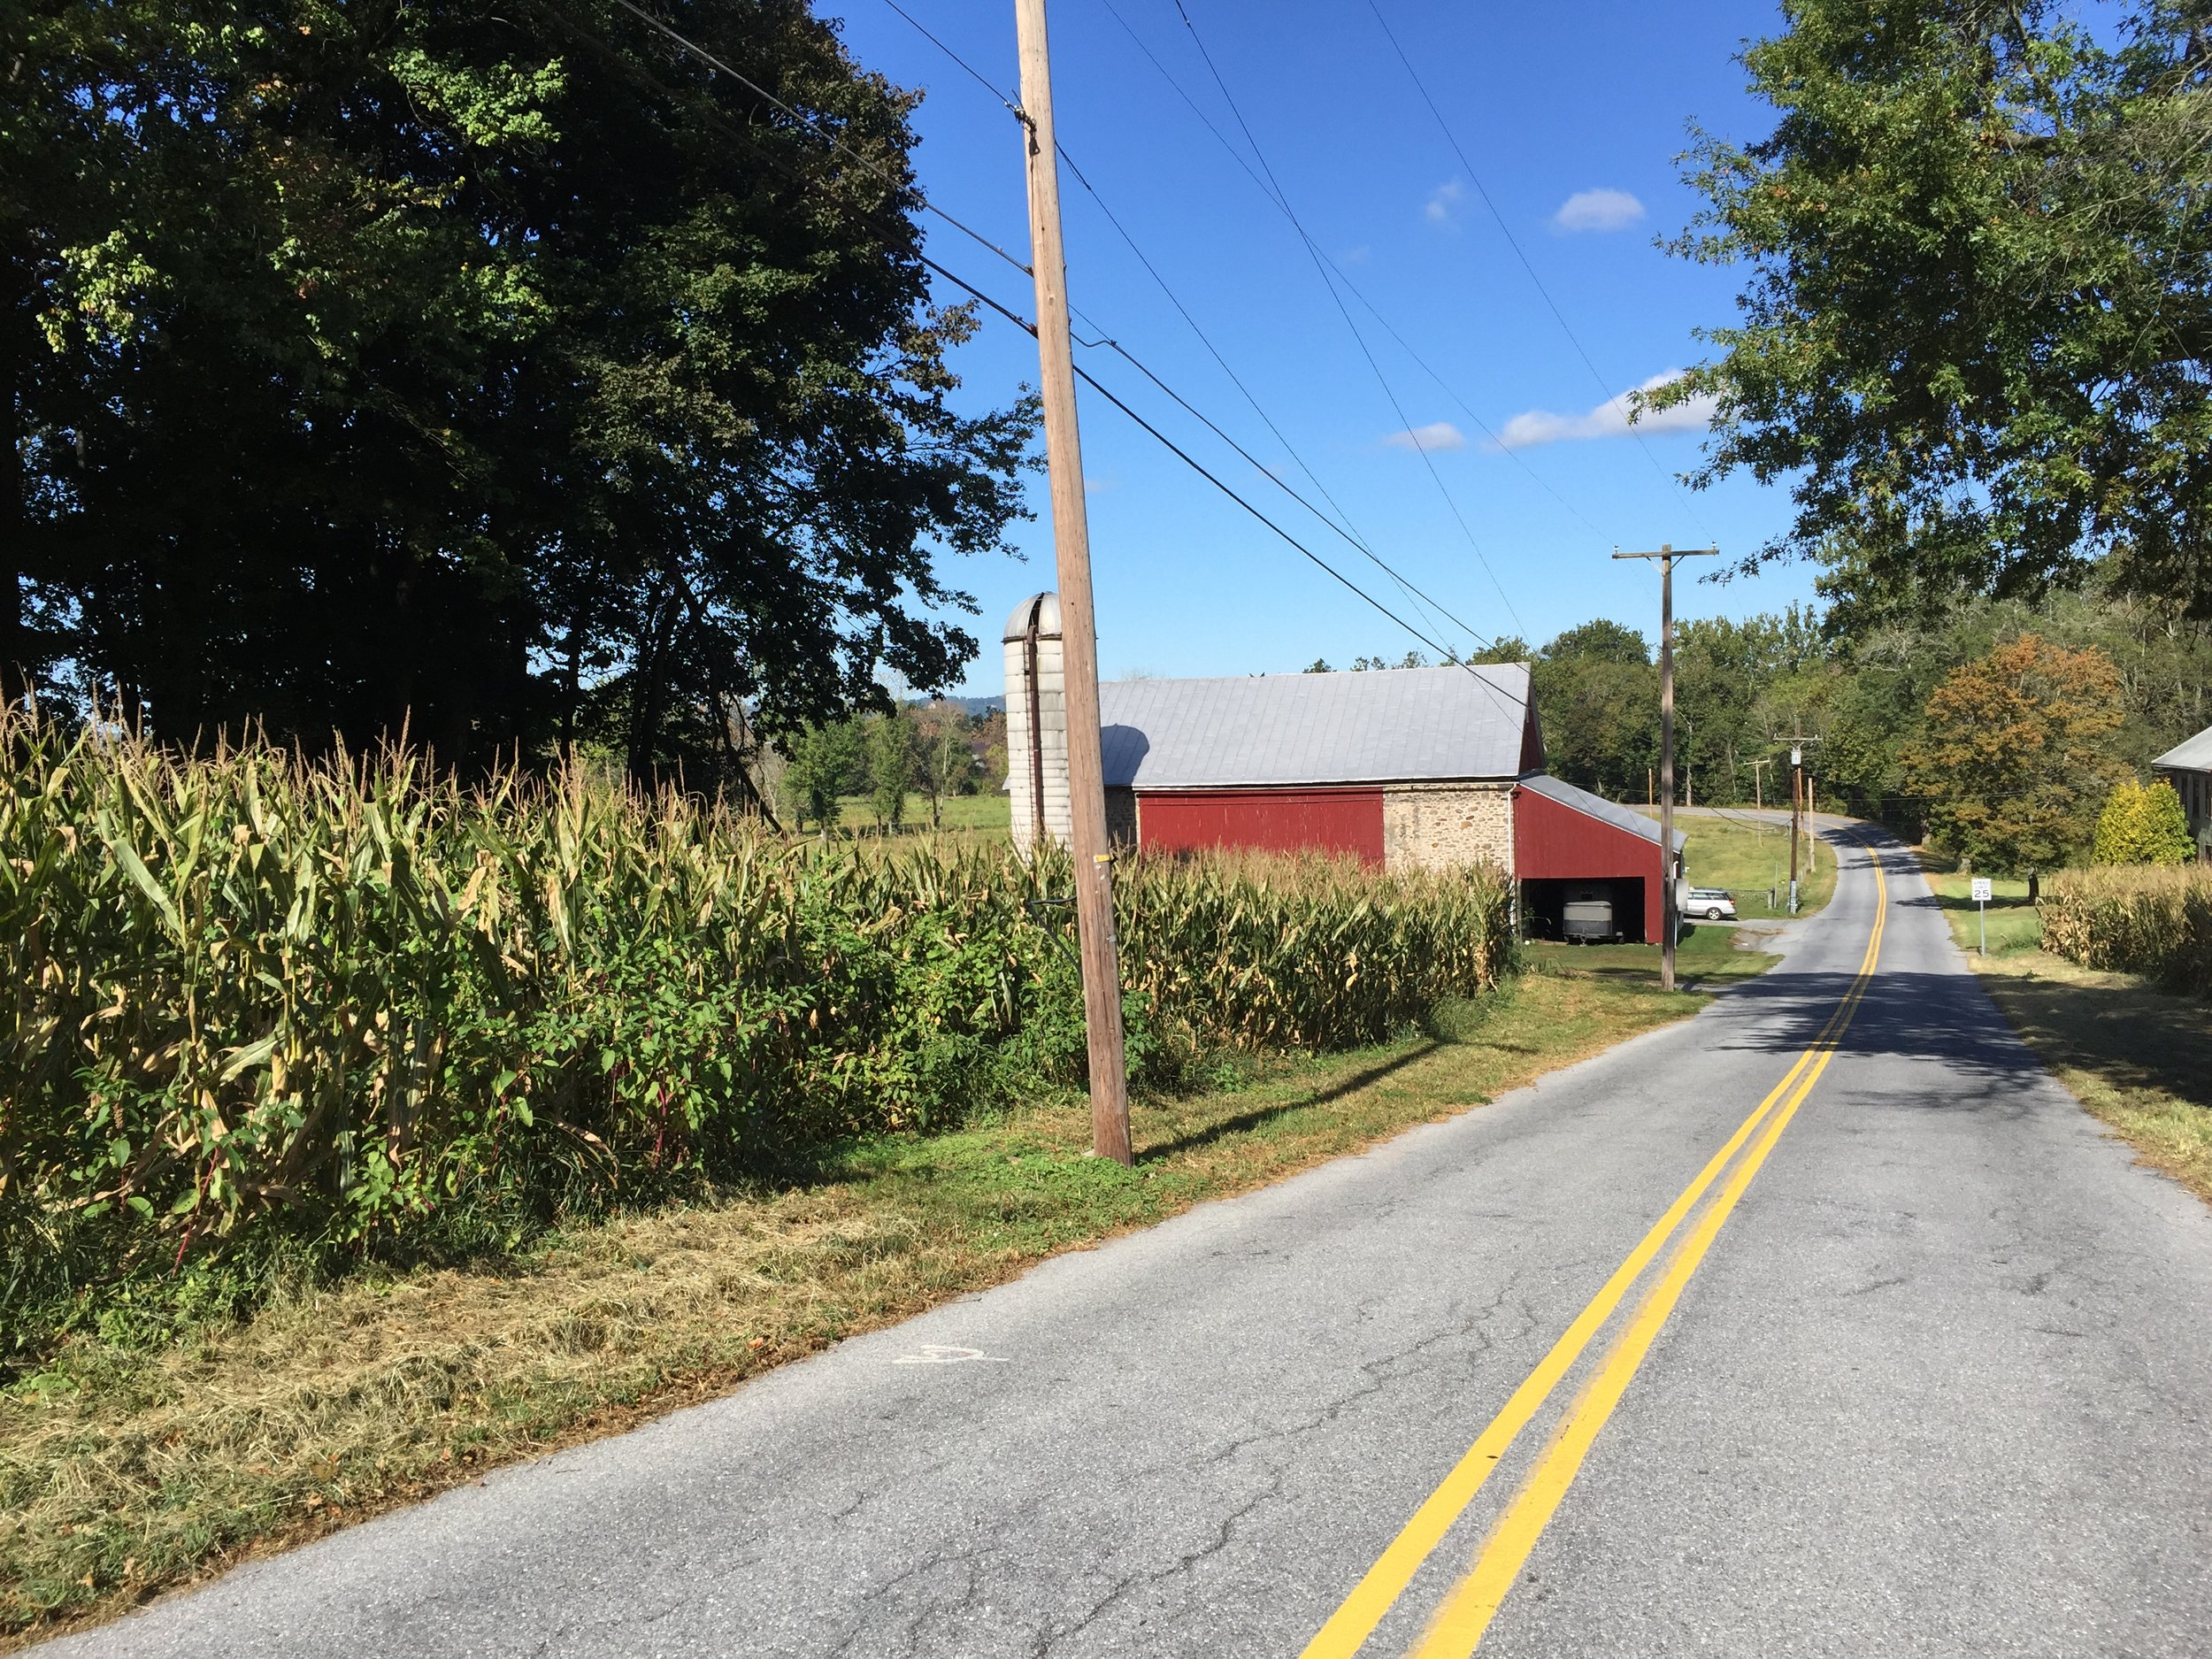 There are numerous barns along the route capturing the feeling of Lehigh and Berks County.